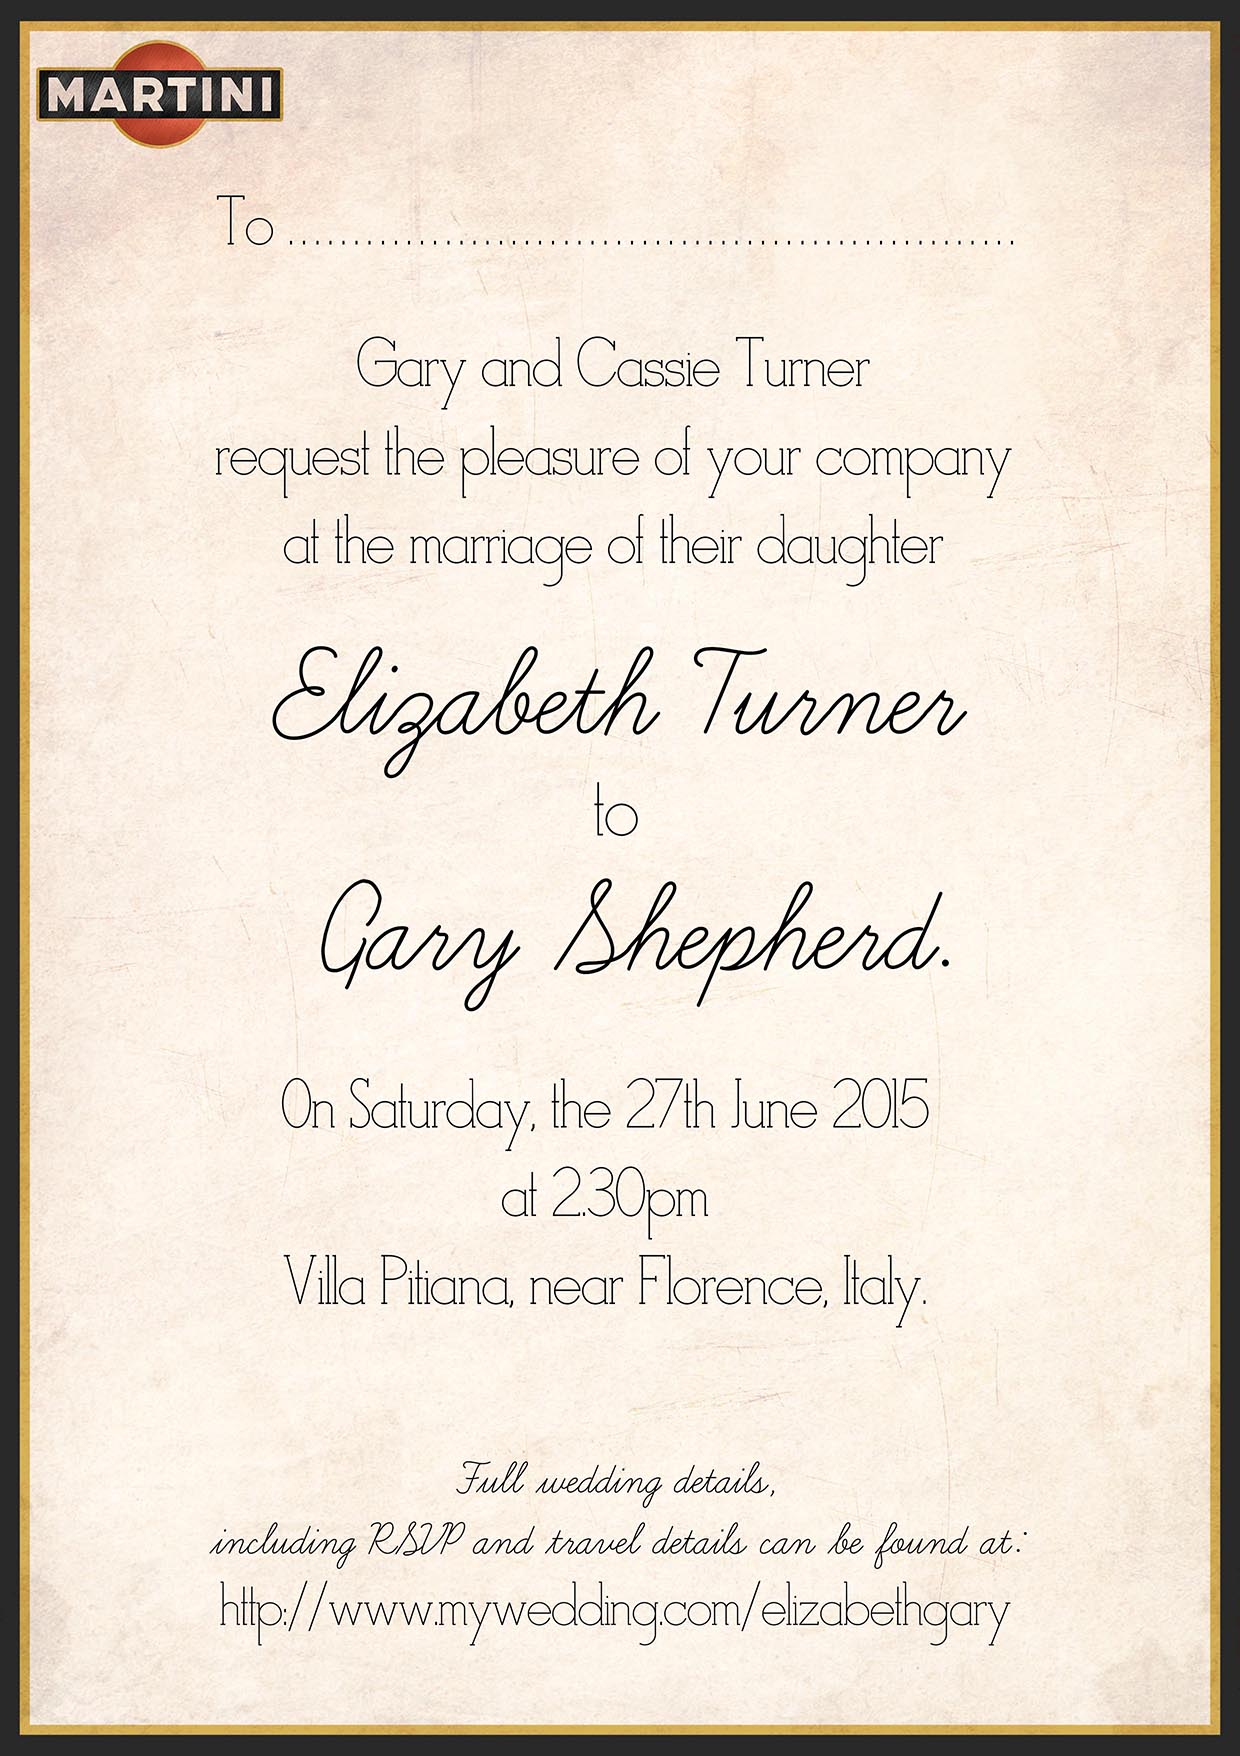 Hannah-Weeks-Wedding-Stationery-Elizabeth-and-Gary-Wedding-Invitation-Back.jpg